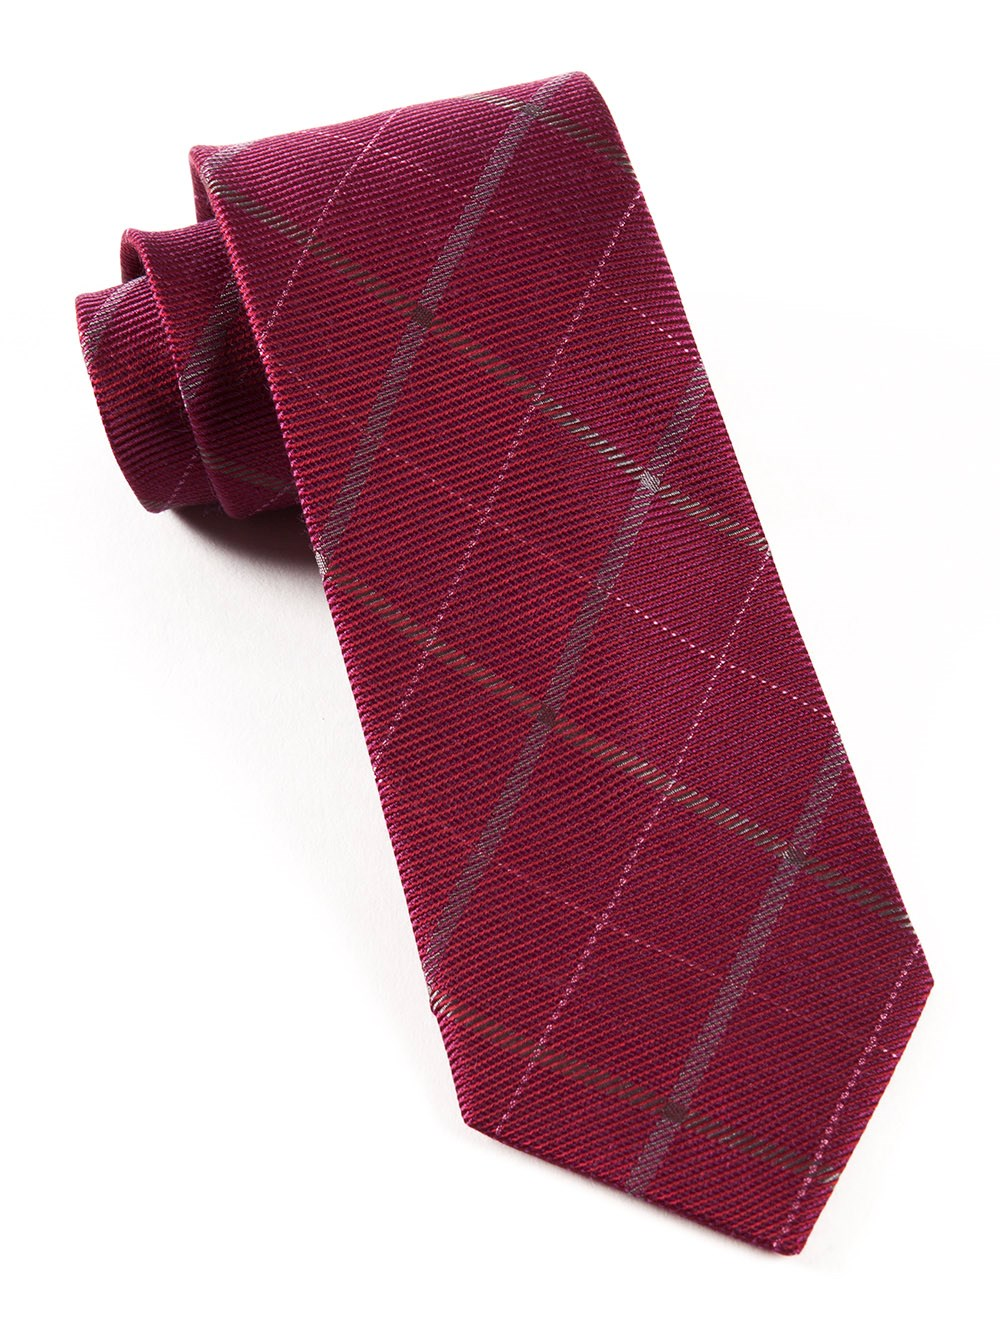 "Sheridan Plaid - Raspberry - 3"" x 58"" - Ties"